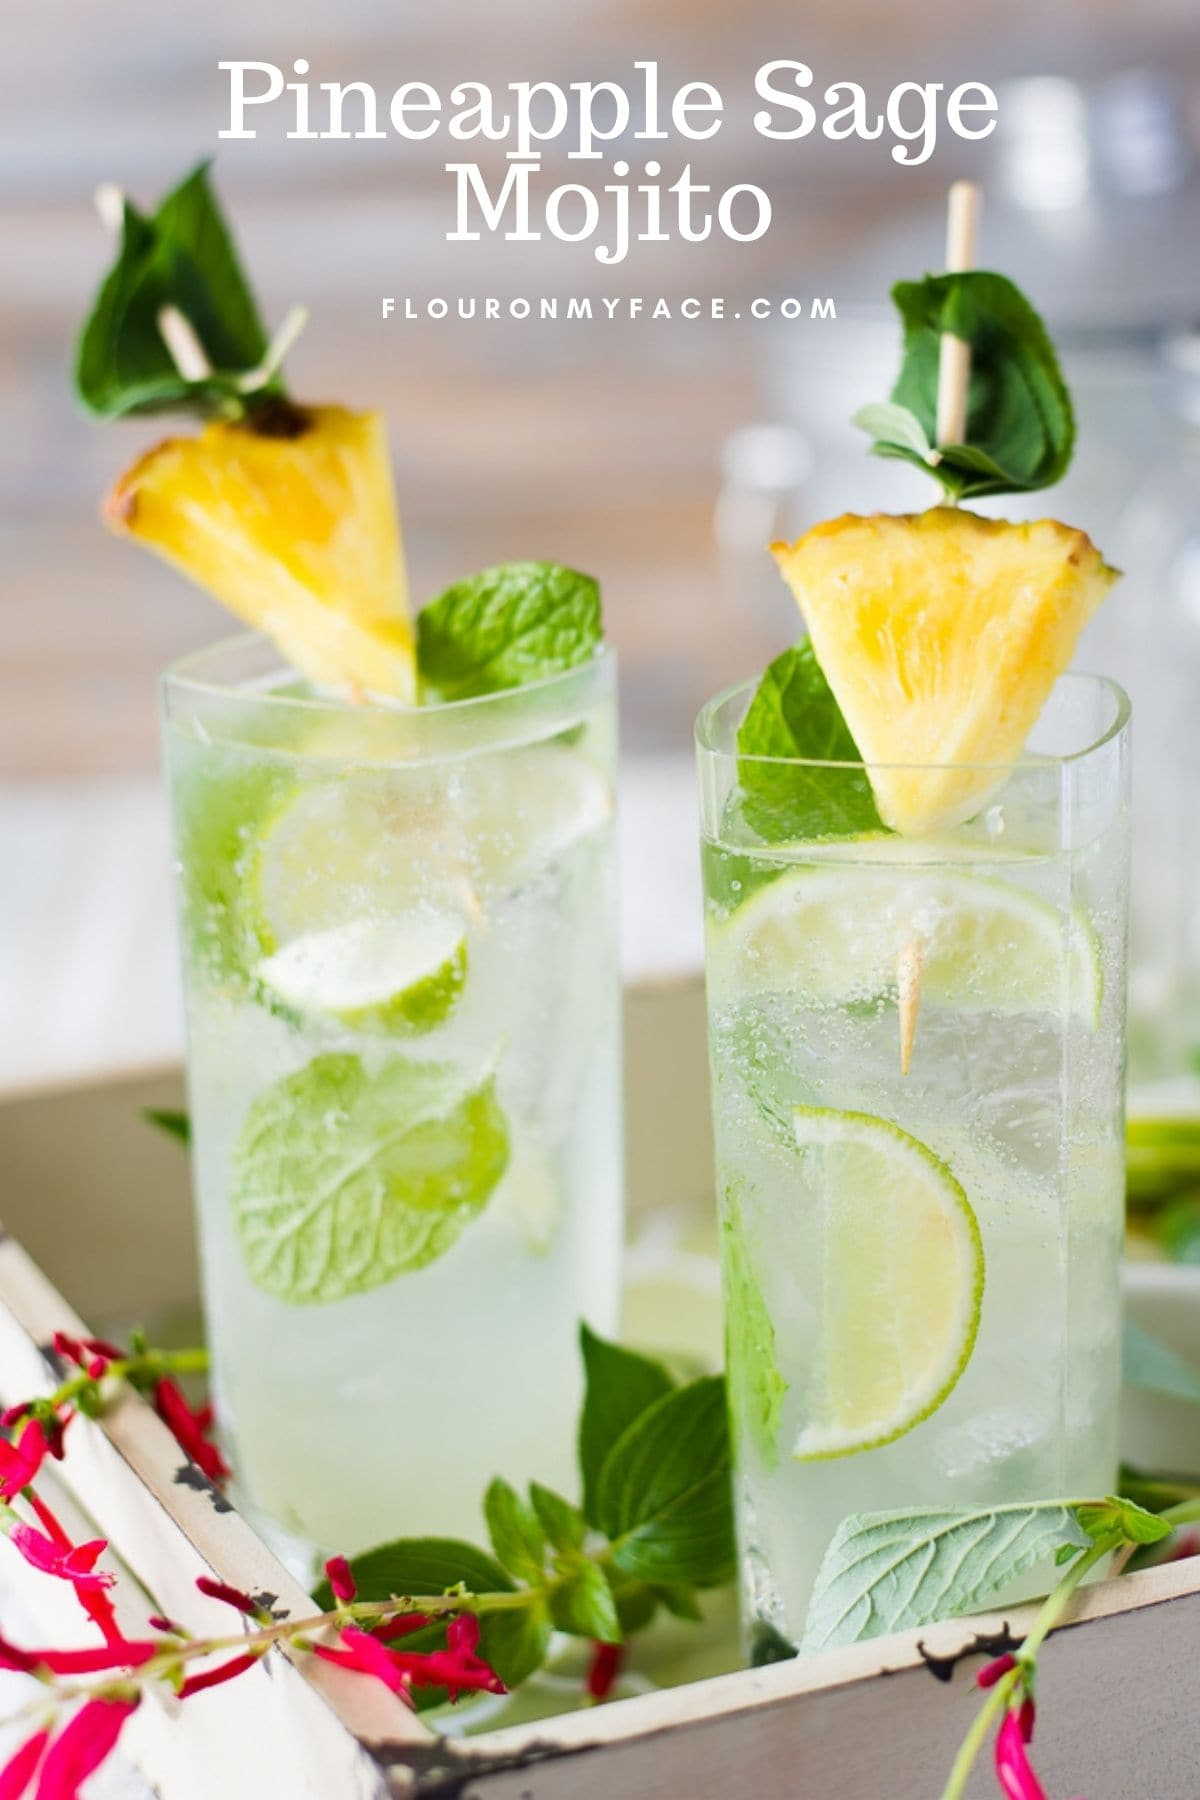 Two tall glasses on a serving tray filled with Pineapple Sage Mojito, garnished with pineapple wedges and mint leaves.